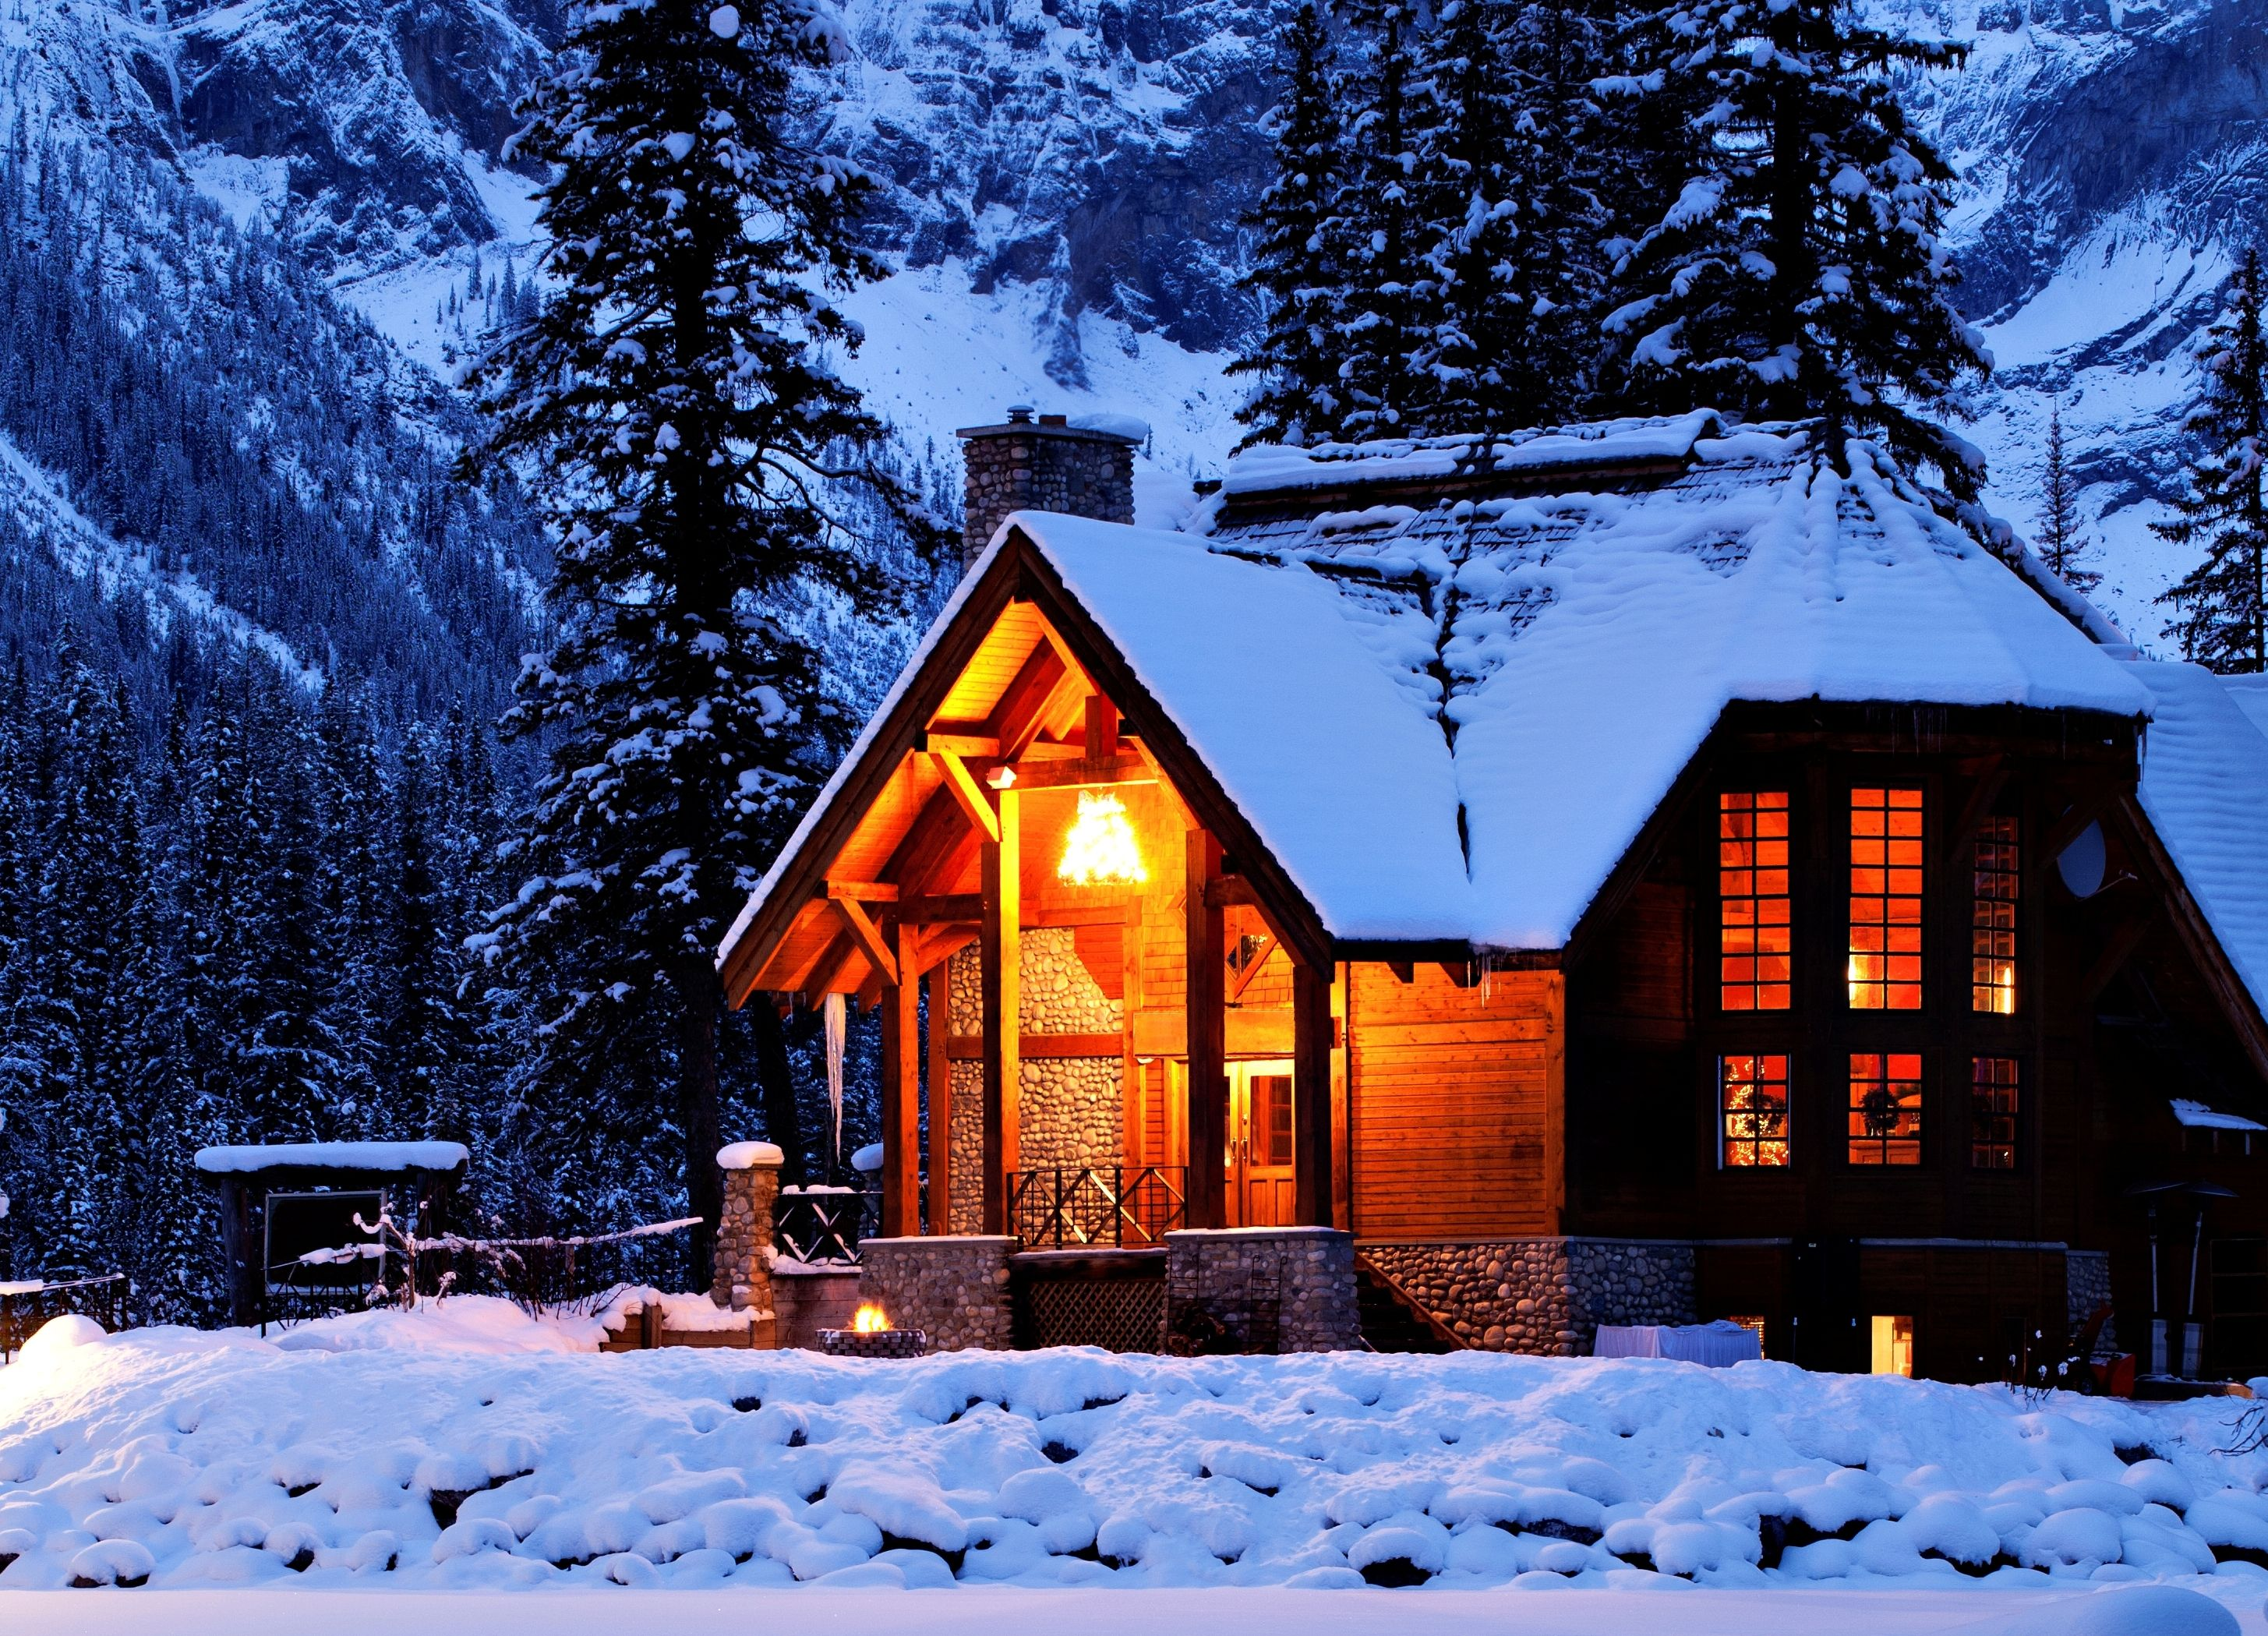 Winter Snow House Trees Mountains Landscape Wallpaper Background